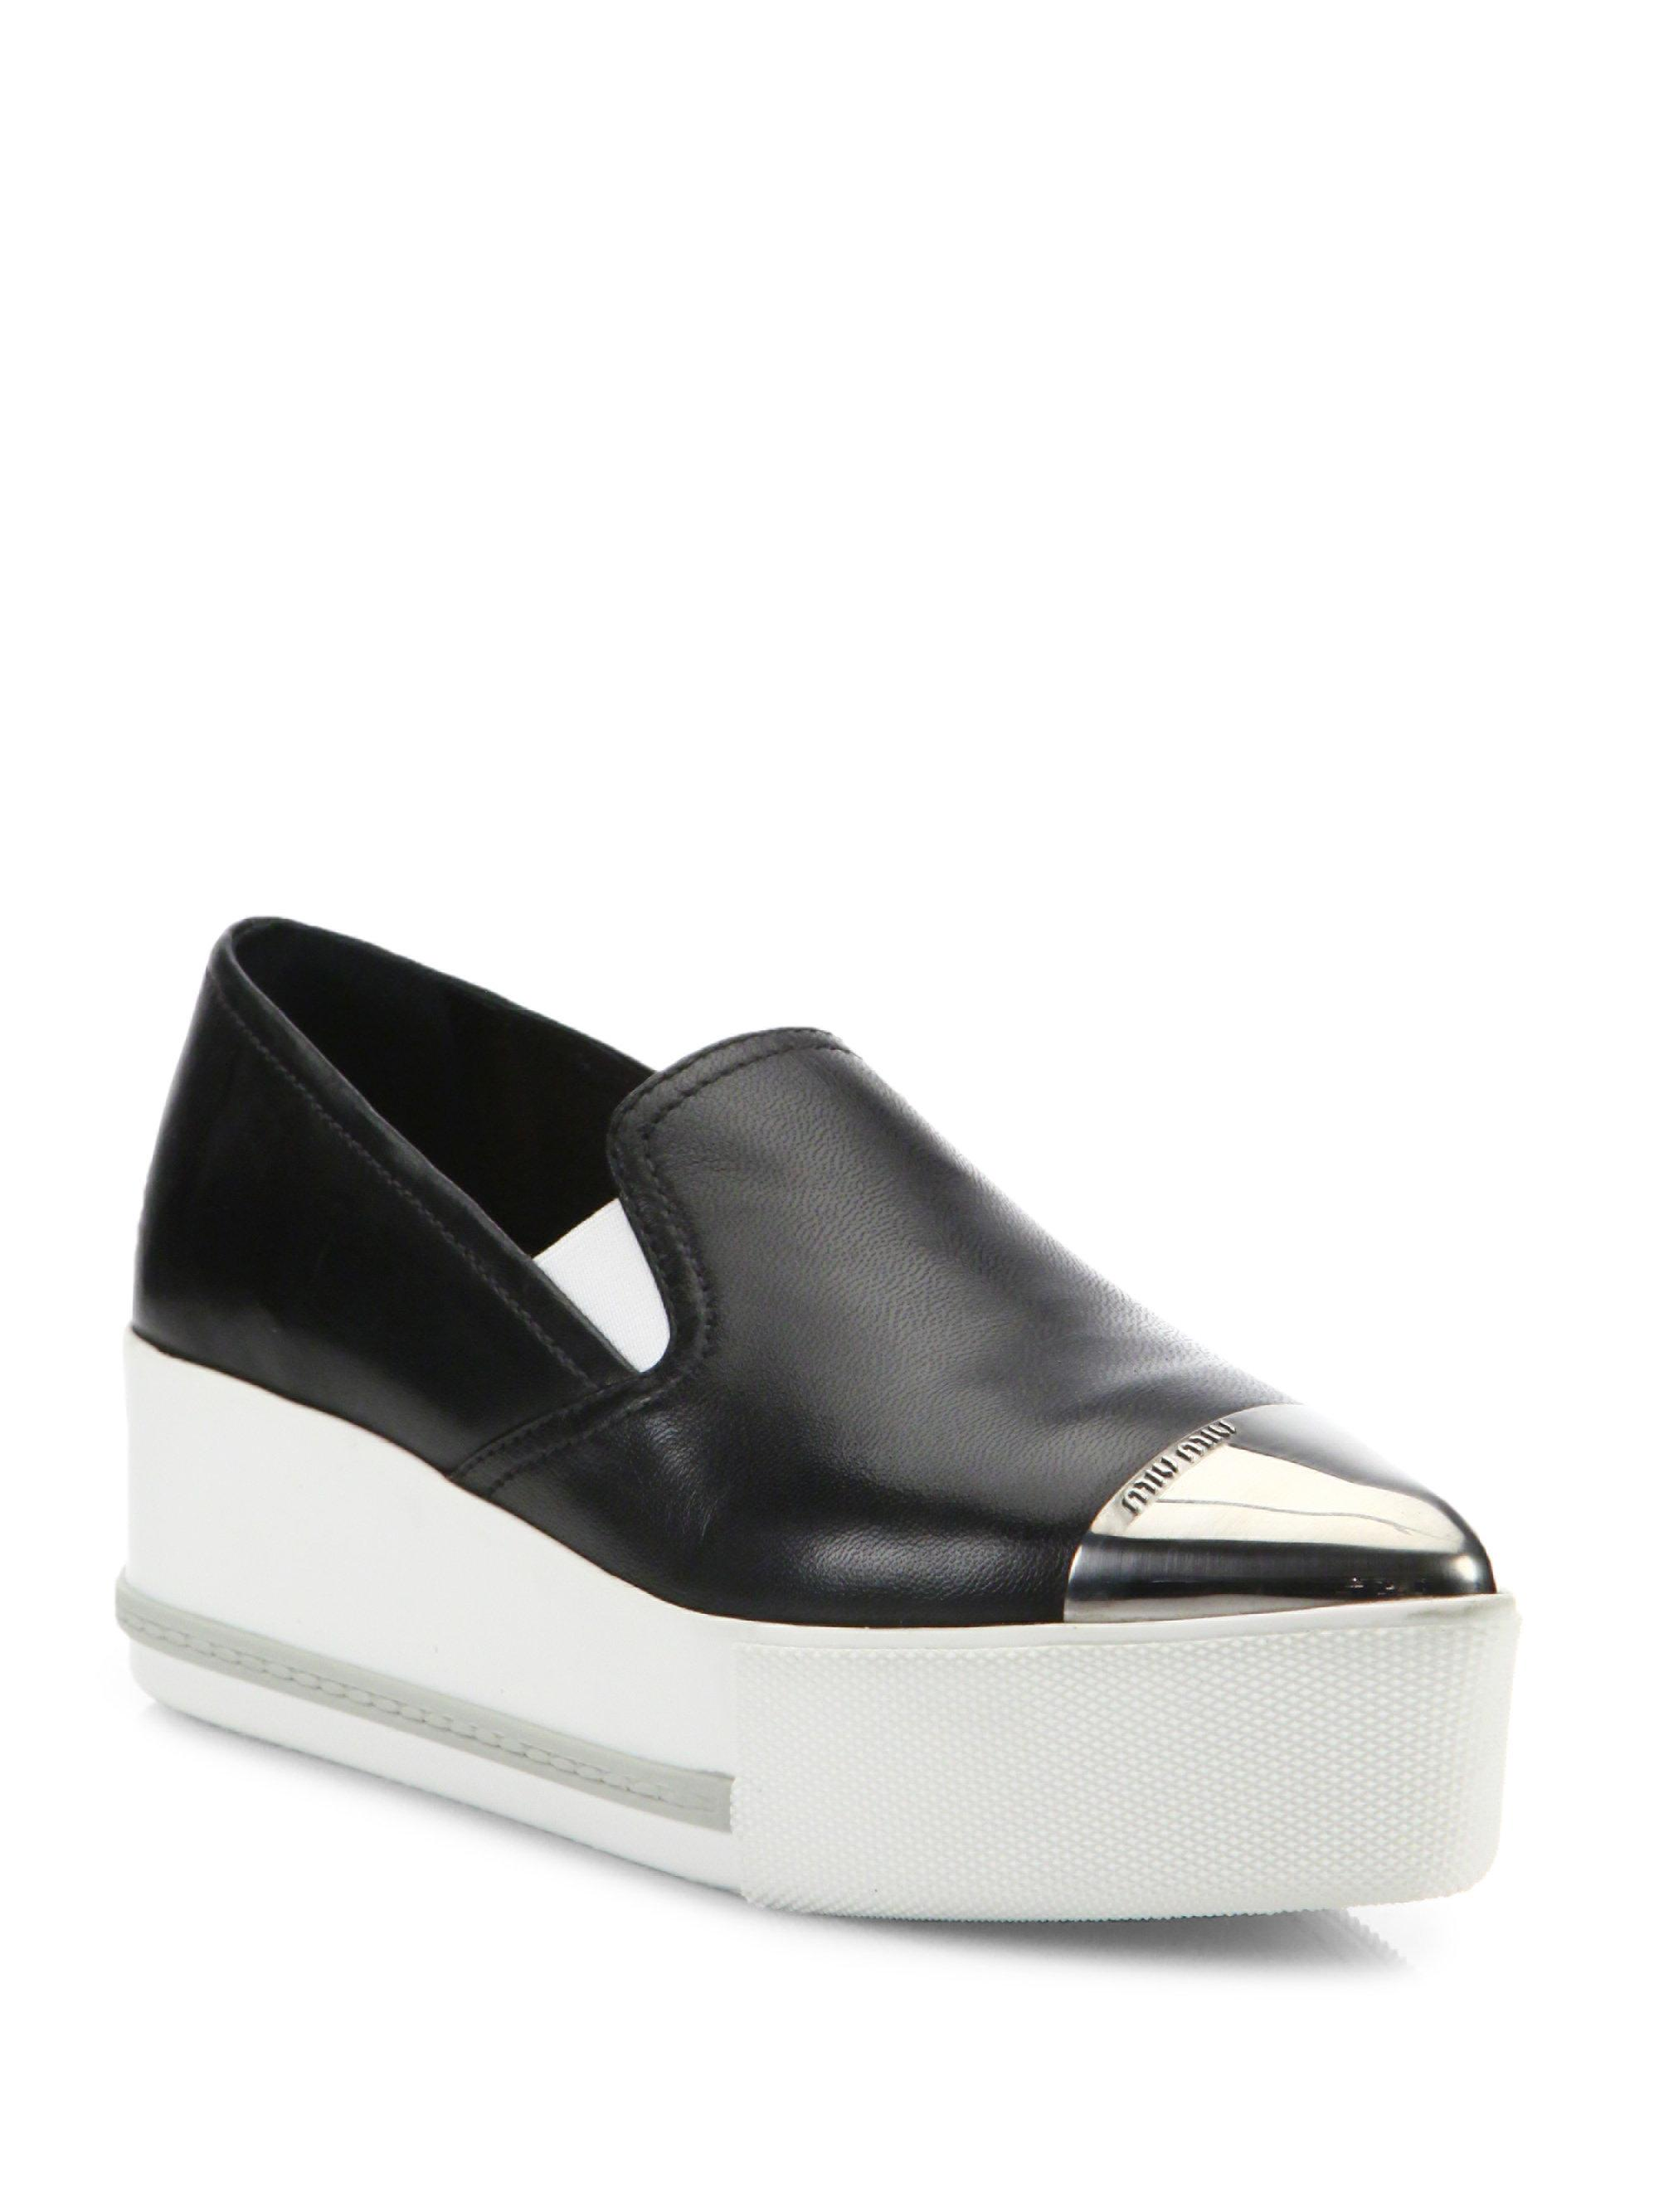 Miu Miu Patent Cap Toe Platform Slip-On Sneakers